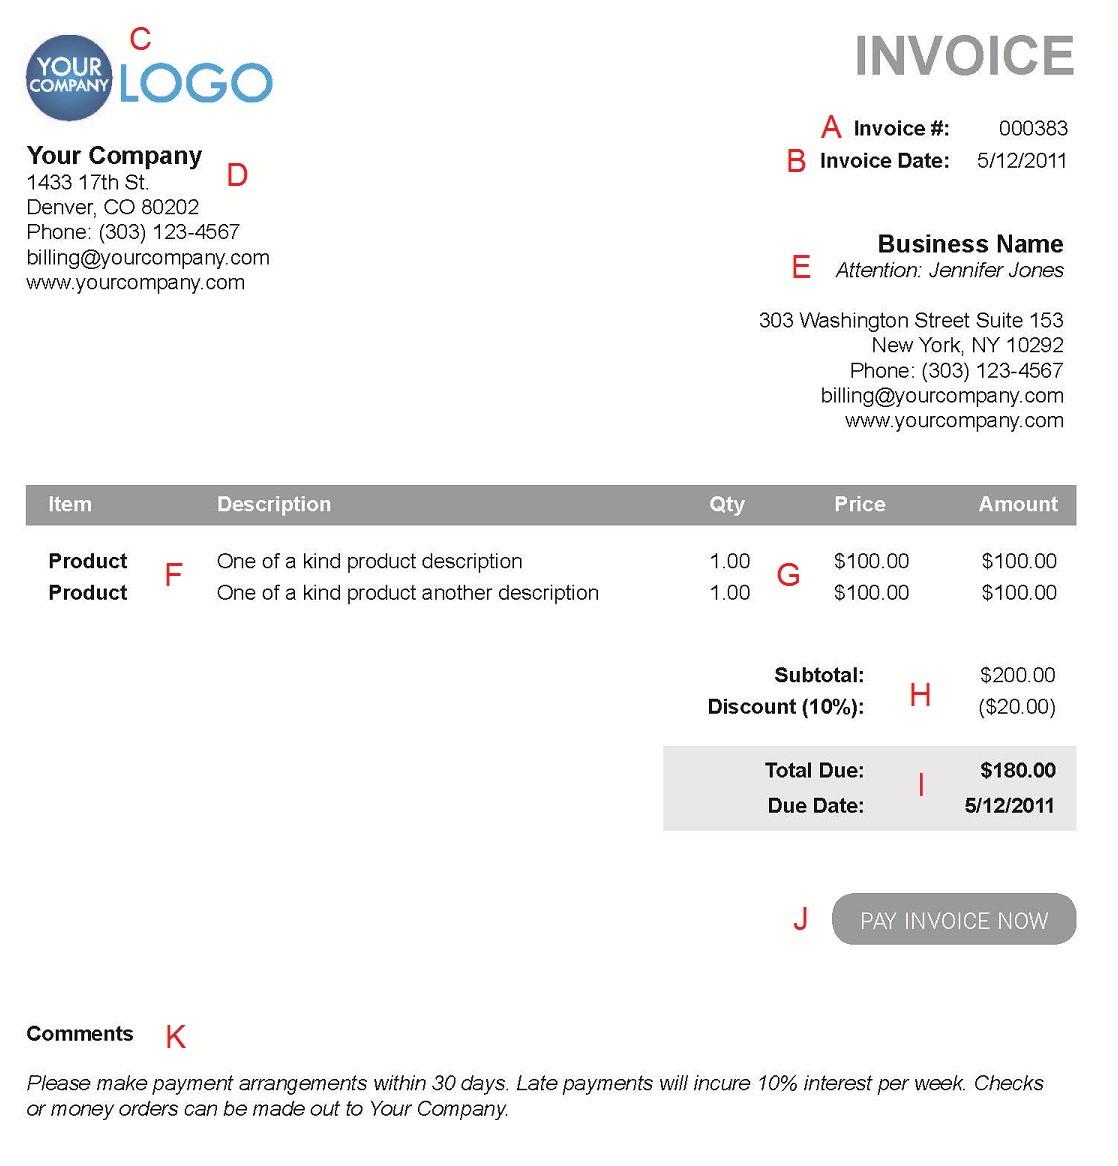 Proatmealus  Prepossessing The  Different Sections Of An Electronic Payment Invoice With Lovable A  With Easy On The Eye Receipt Document Also Read Receipts In Outlook In Addition Confirmation Of Email Receipt And Receipt Maker Free As Well As Hand Receipts Additionally How Long Do I Need To Keep Receipts From Paysimplecom With Proatmealus  Lovable The  Different Sections Of An Electronic Payment Invoice With Easy On The Eye A  And Prepossessing Receipt Document Also Read Receipts In Outlook In Addition Confirmation Of Email Receipt From Paysimplecom